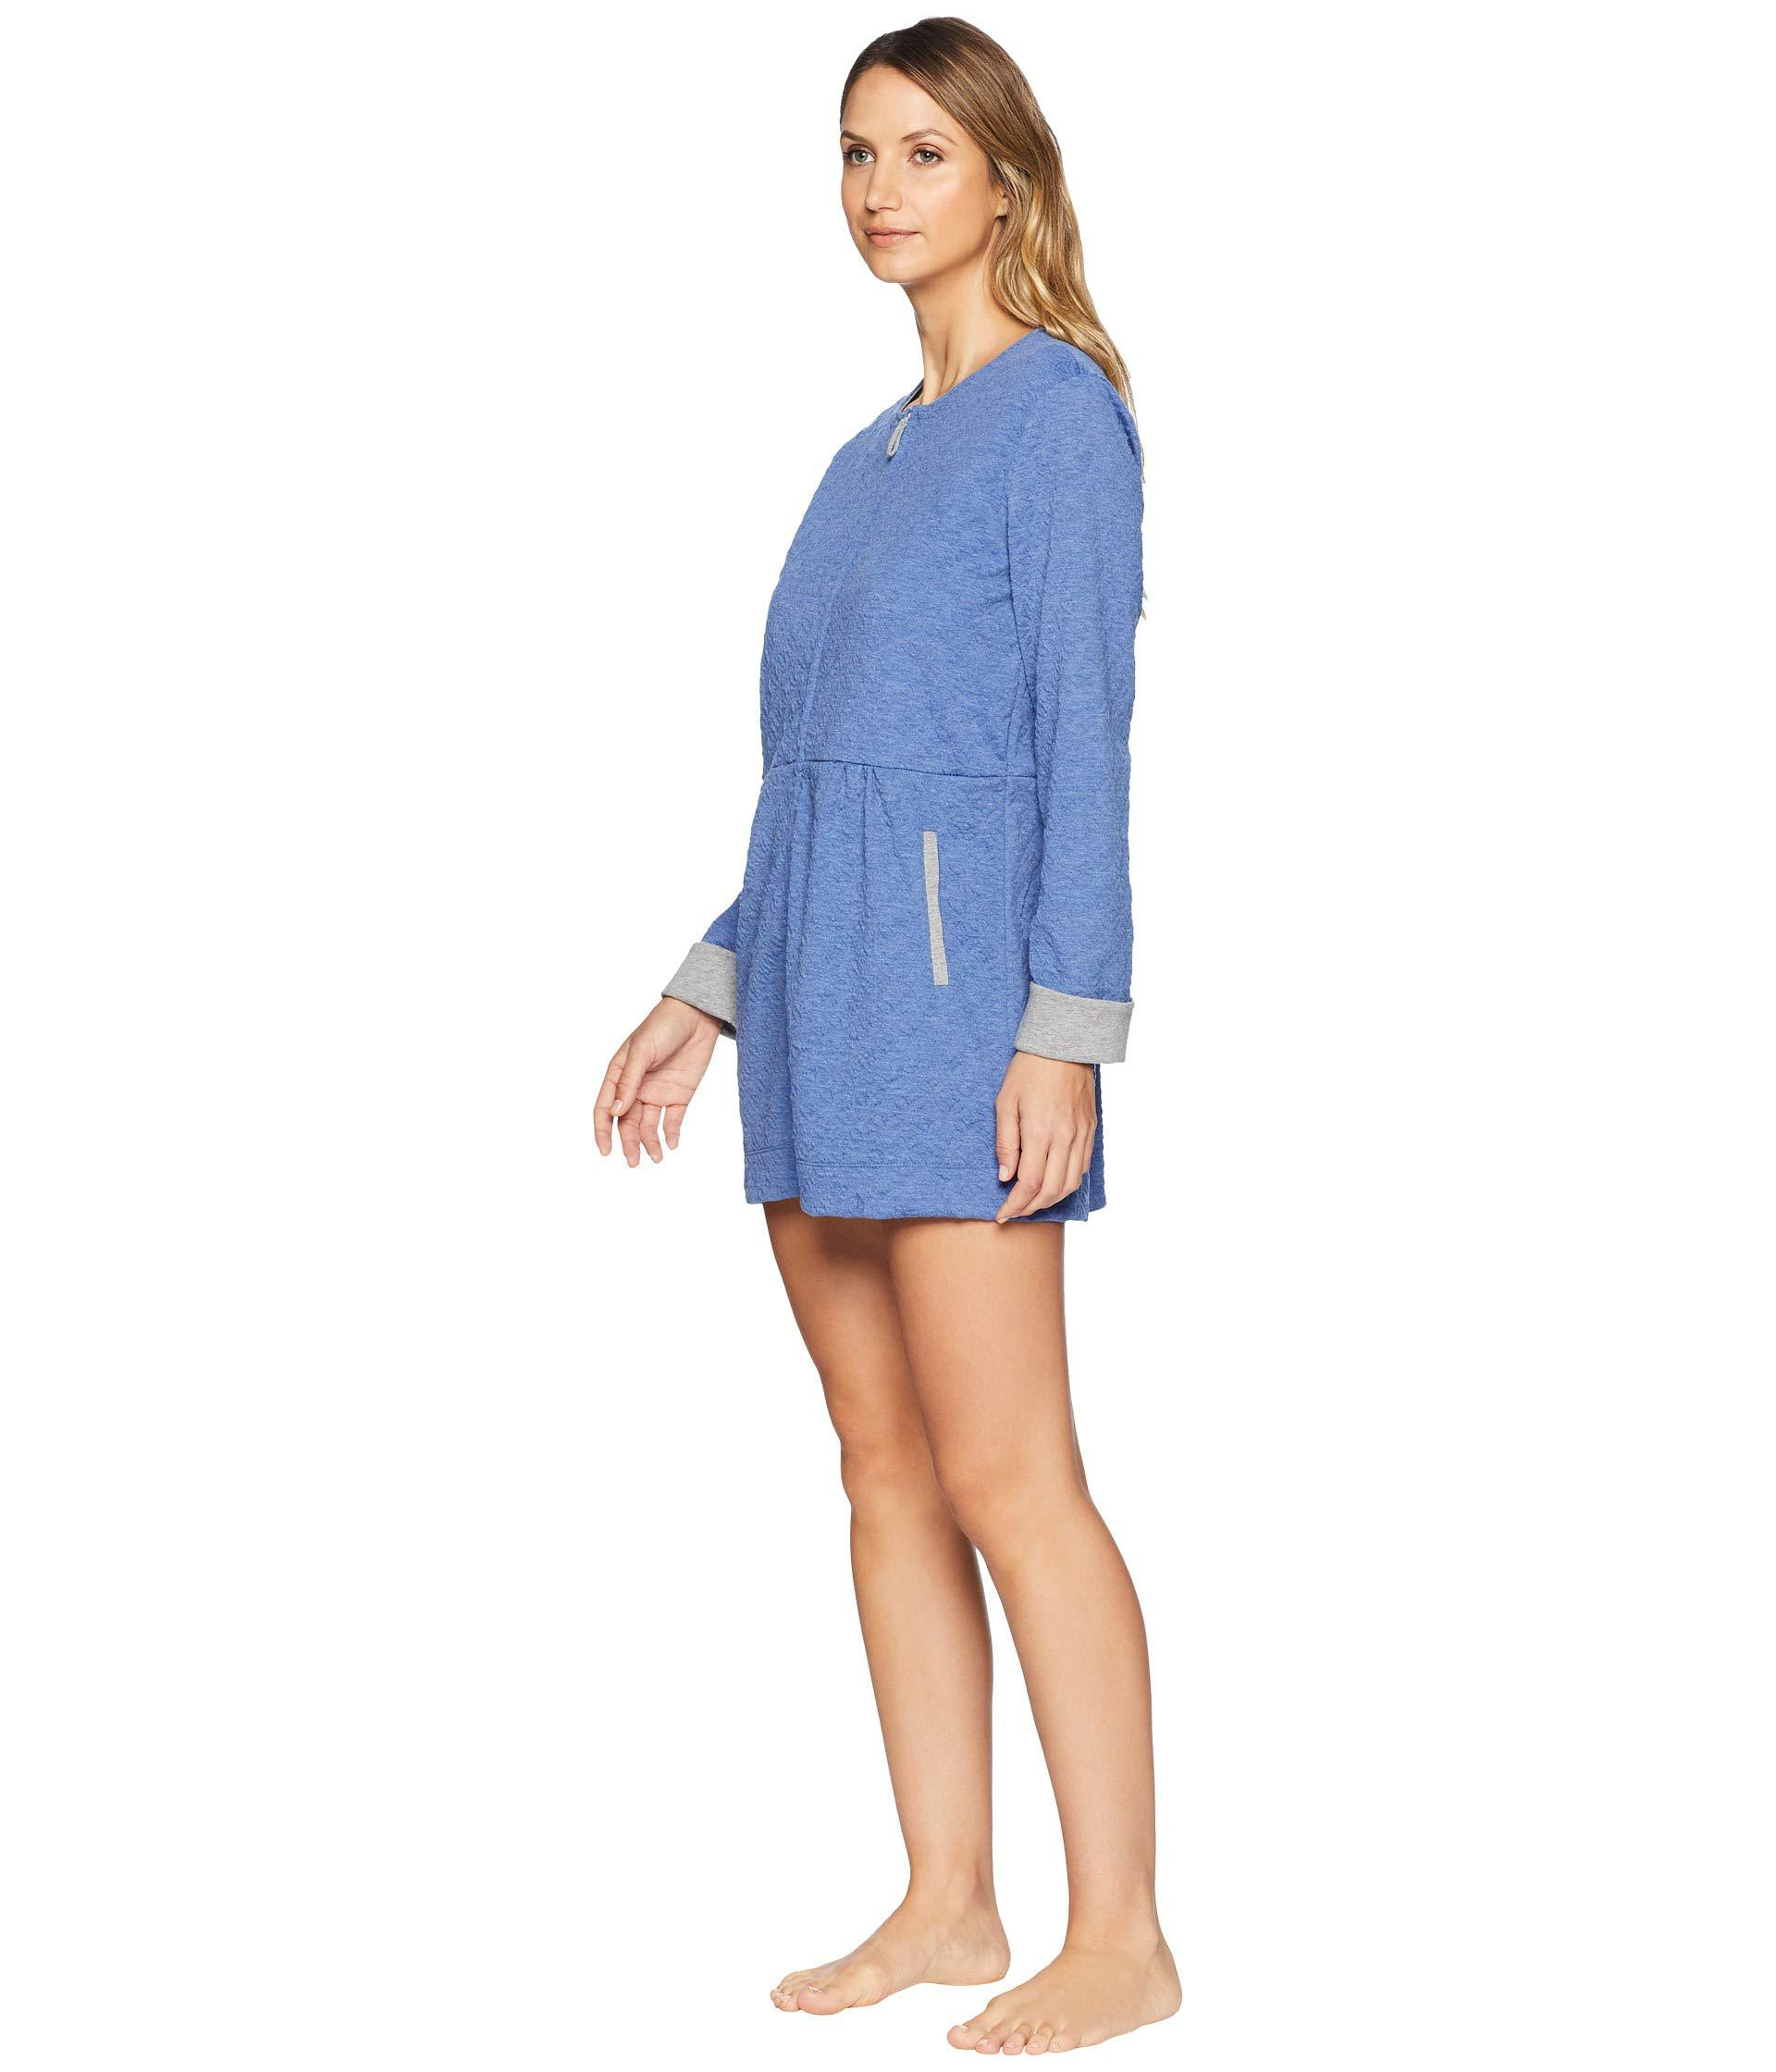 d19e74c750 Lyst - Carole Hochman Short Zip Robe in Blue